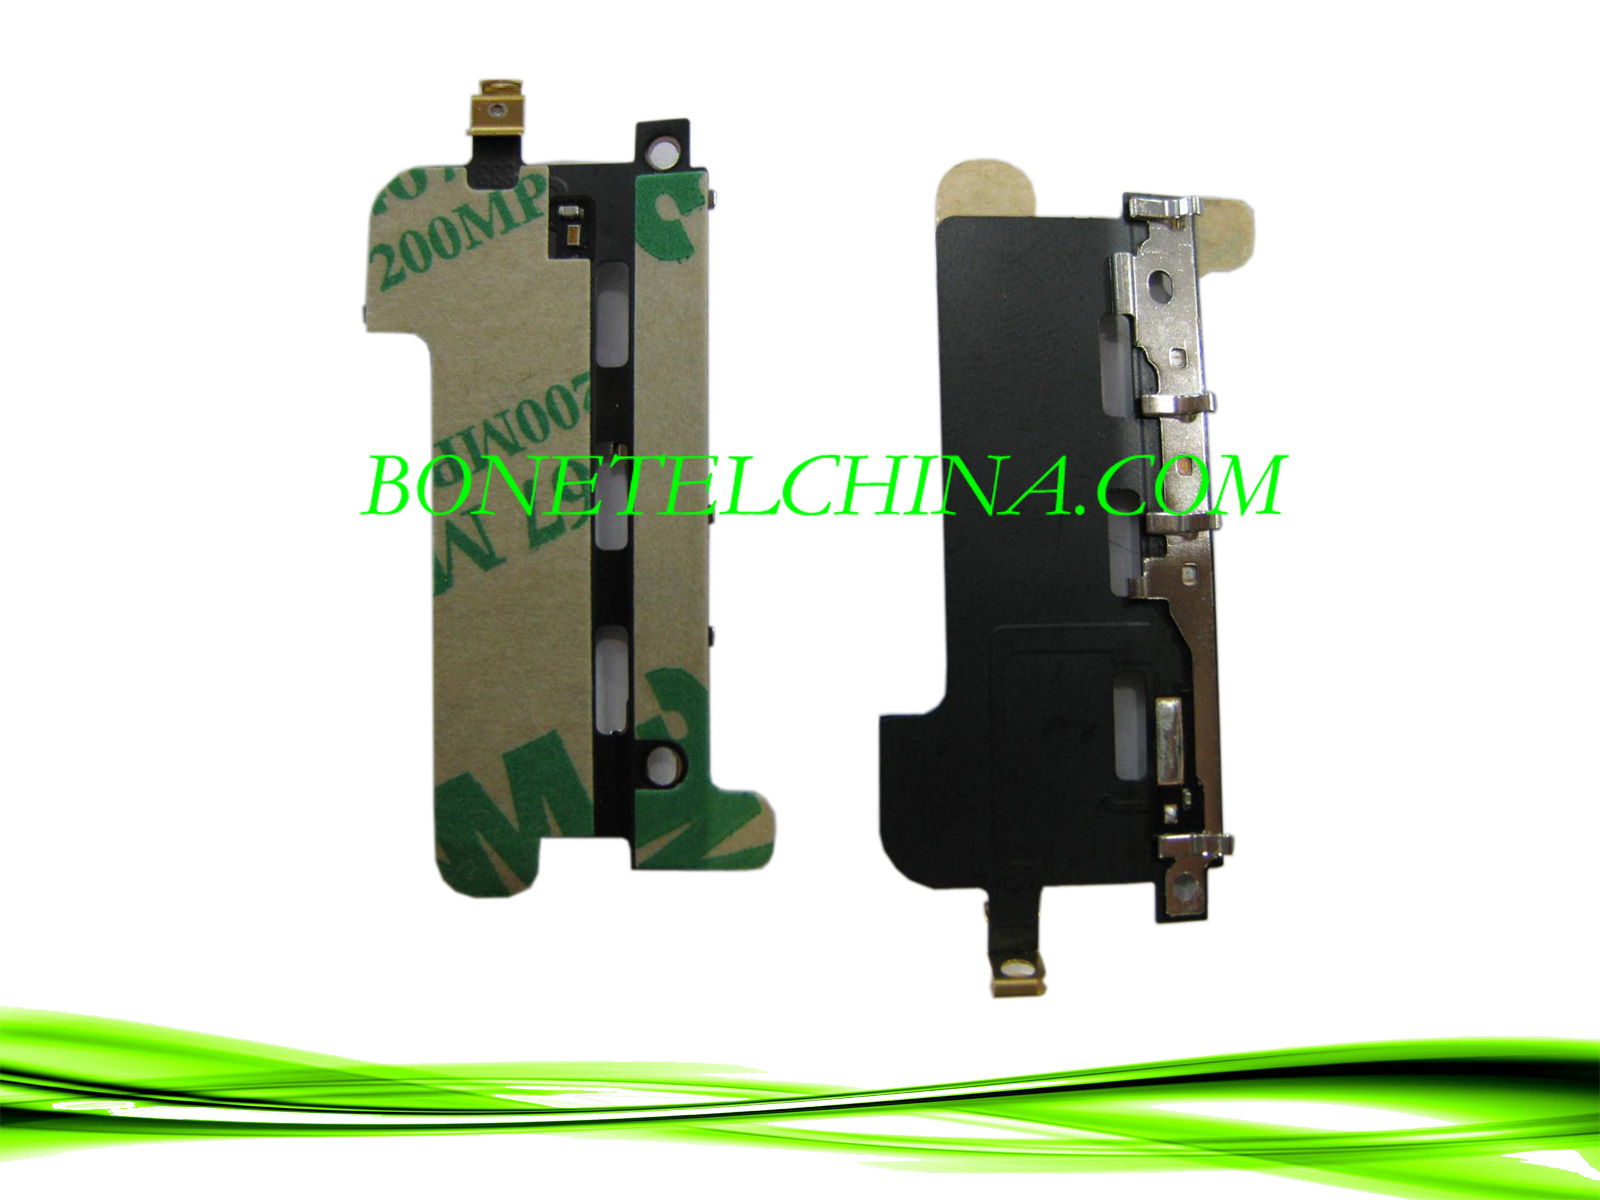 Mobile Phone Celular Camera Flex Cable for iPhone 4G WiFi Flex Cable (BON-FX-IPH4G)